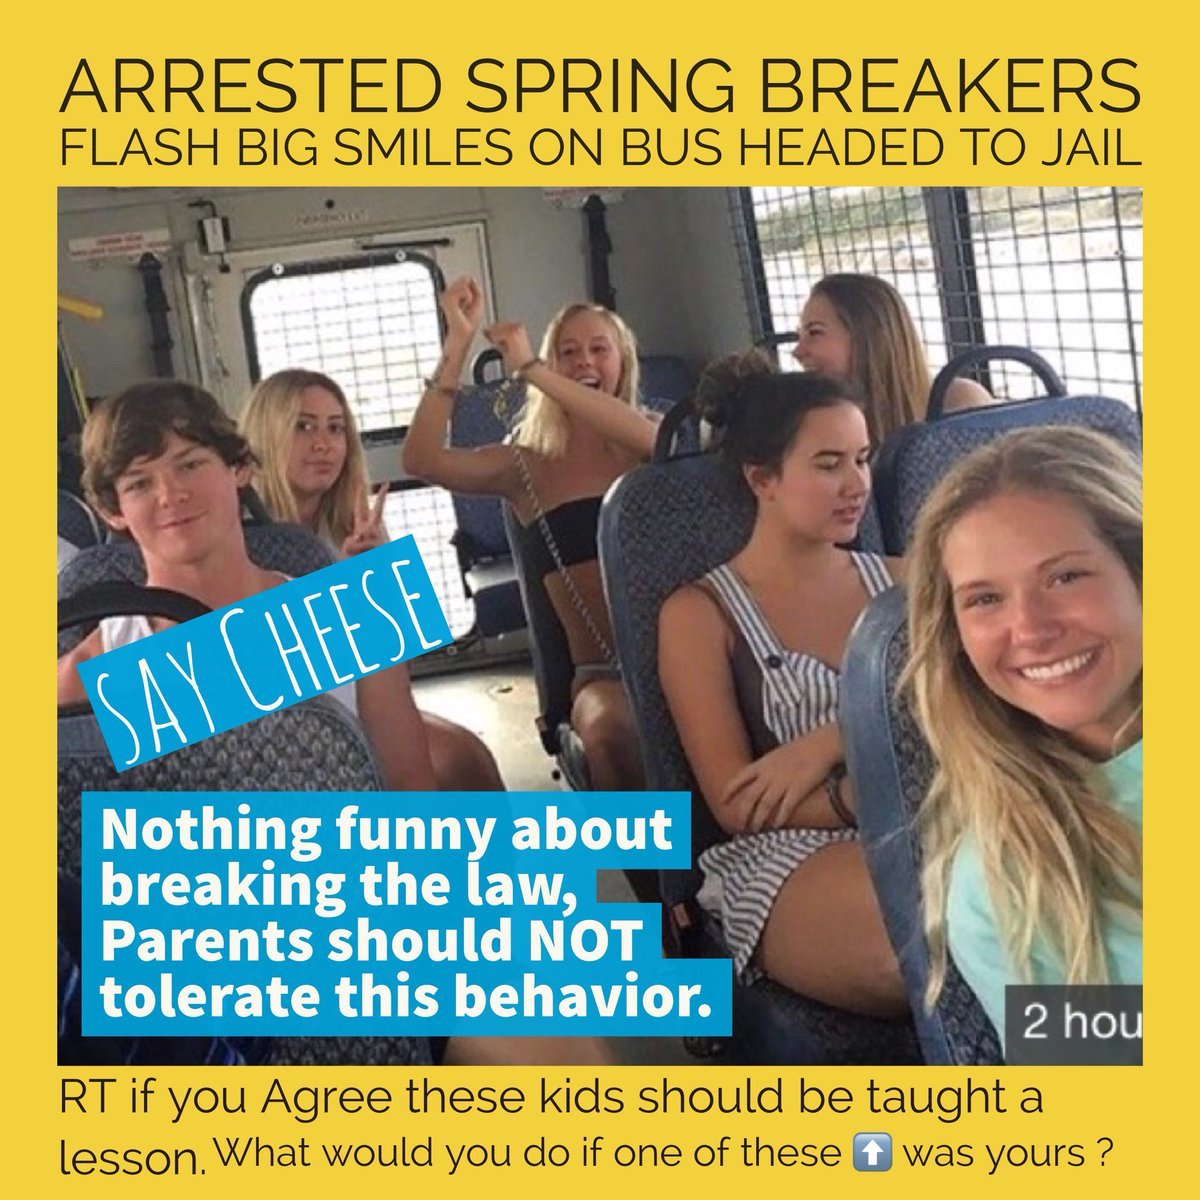 Arrested spring breakers flash big smiles on bus headed to jail - if one of these characters were yours - what would you do ? #TuesdayThoughts #SpringBreak fxn.ws/2prjBMd #FoxNews #WednesdayWisdom